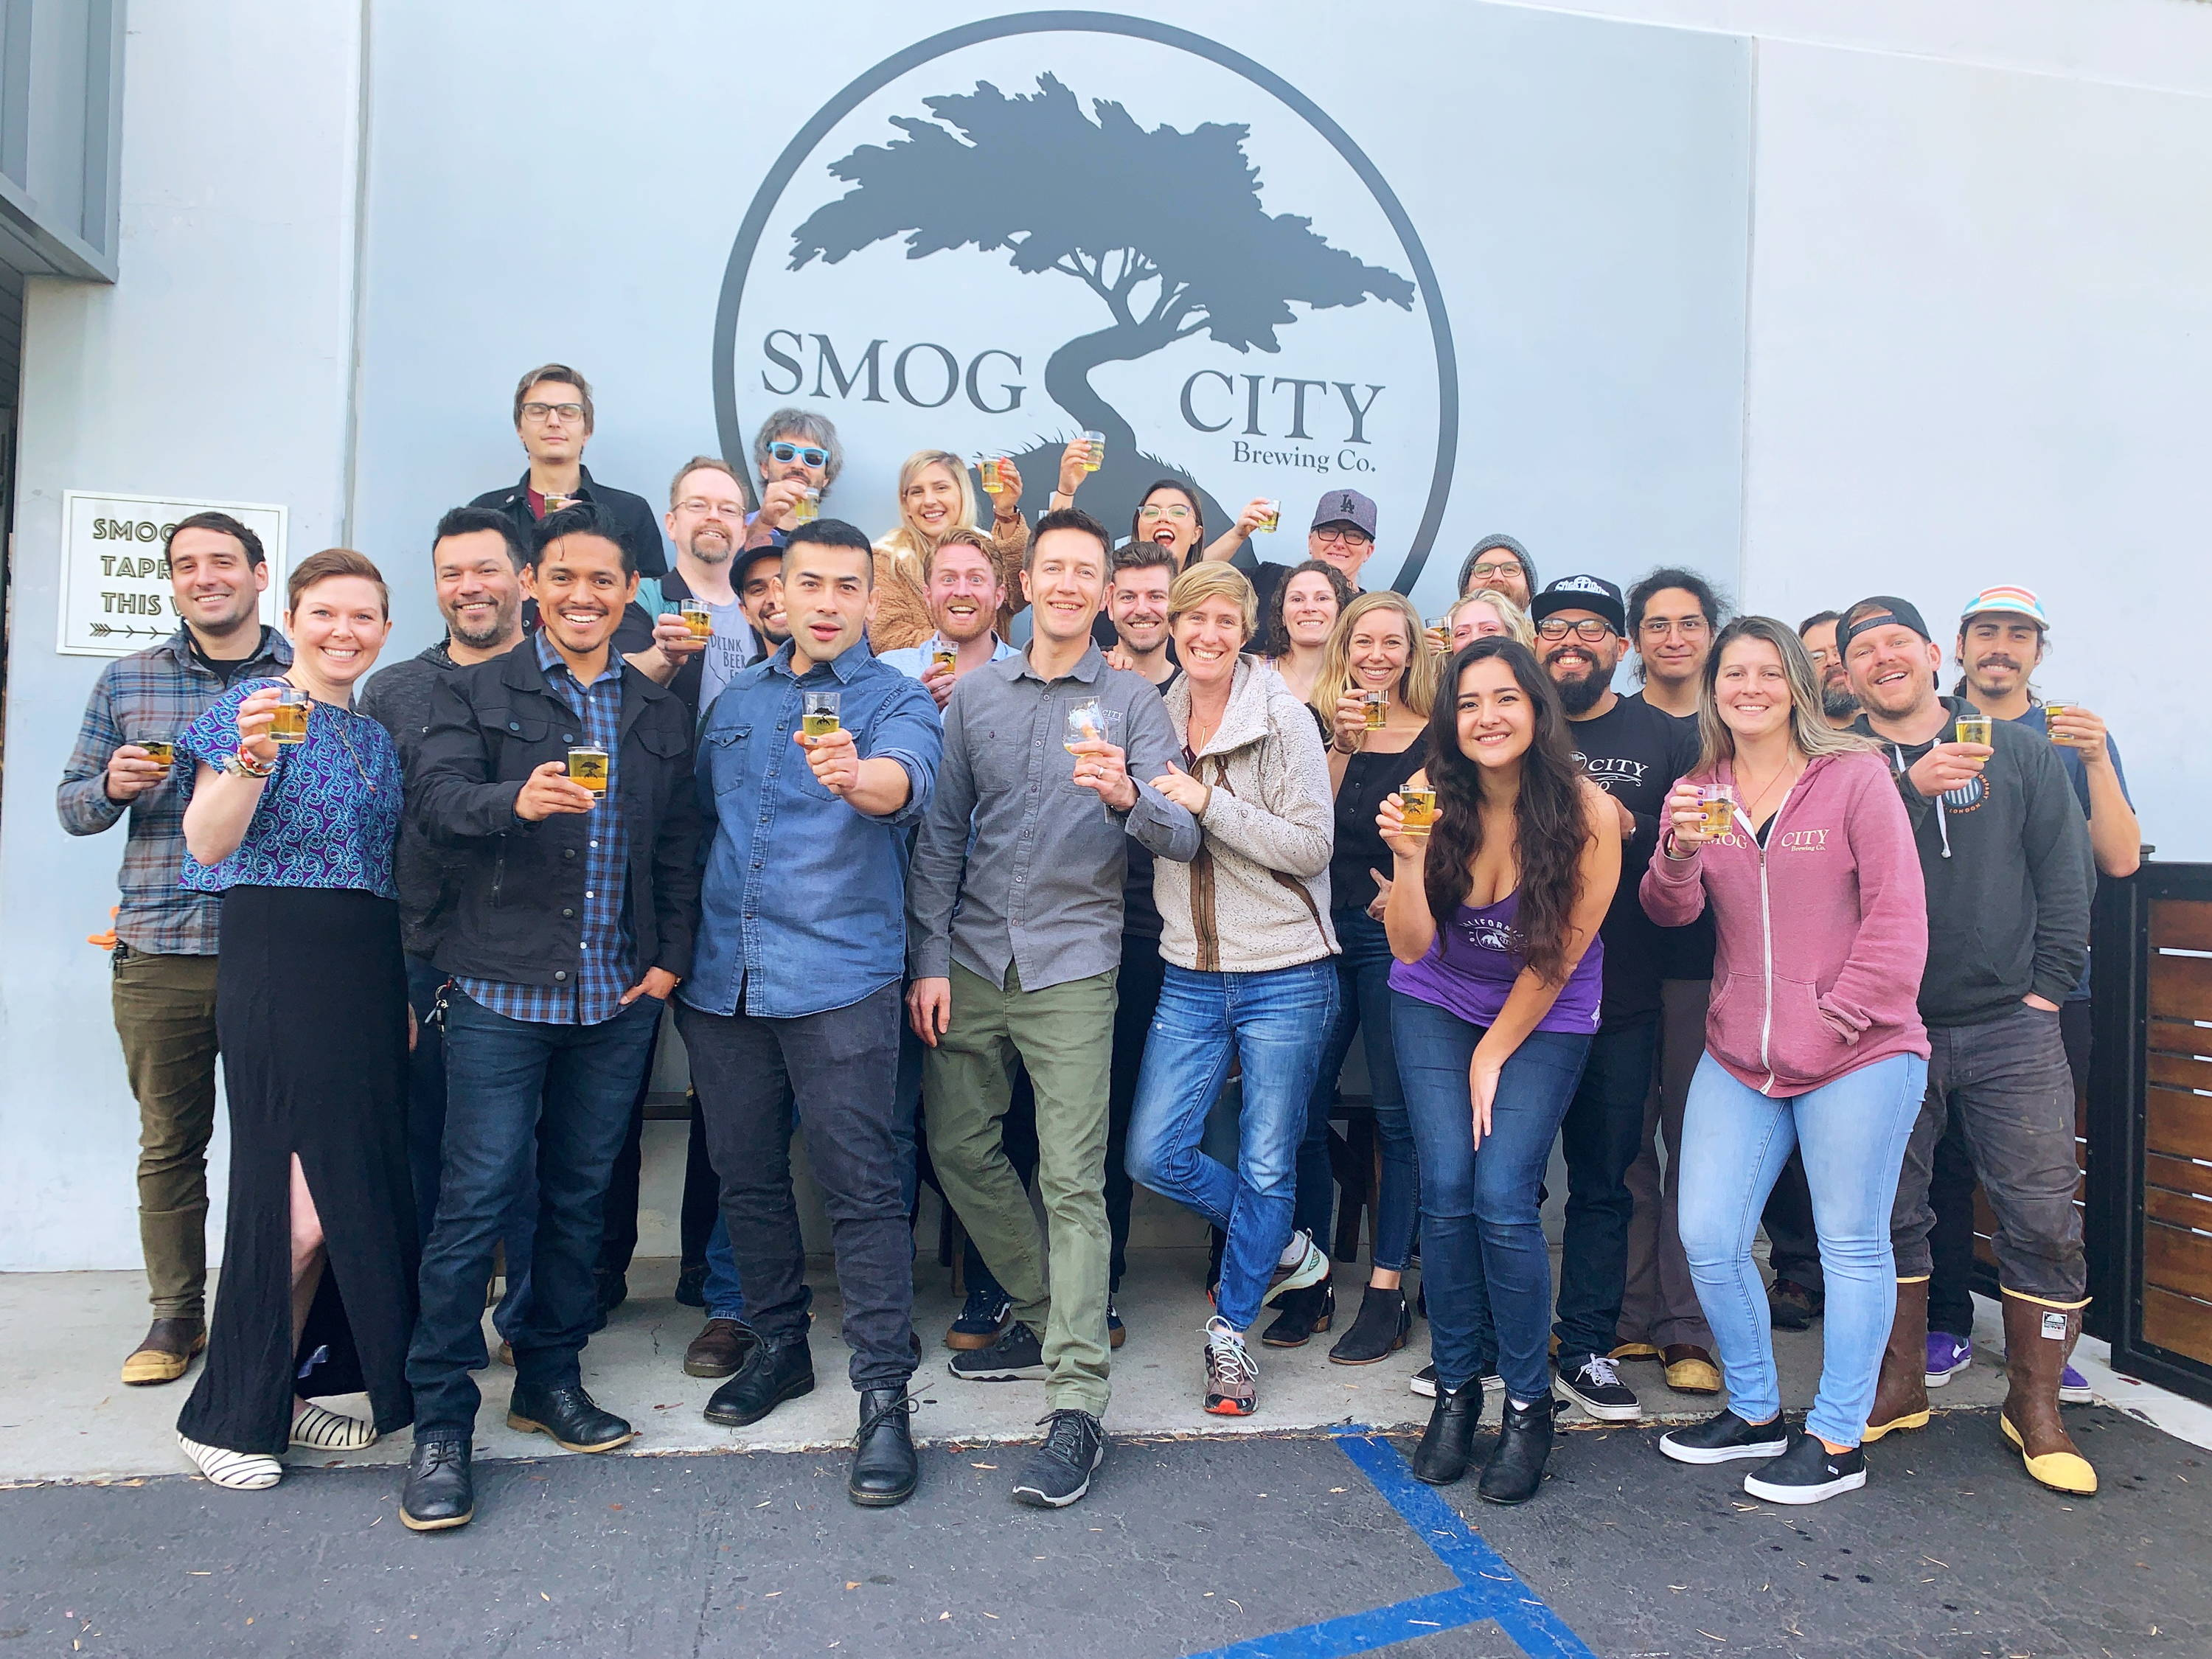 All staff photo of Smog City. Everyone is cheering, one person is laying on the floor. Many people are laughing, and loving being a part of the Smog City crew.